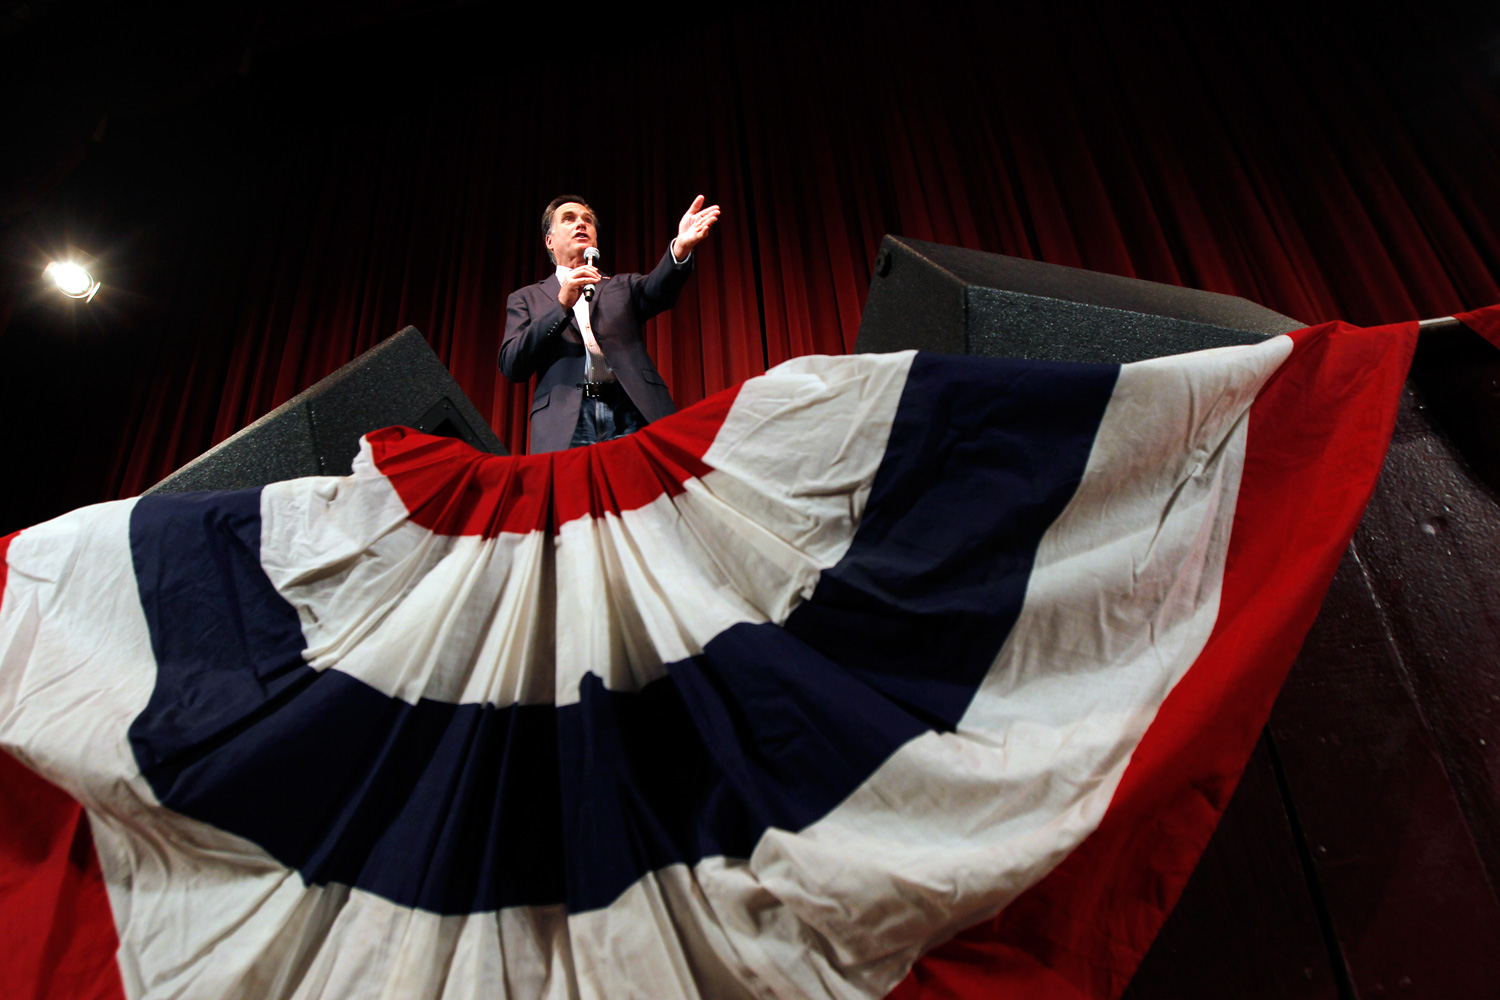 Feb. 27, 2012. Republican presidential candidate Mitt Romney speaks at a campaign rally at the Royal Oak Theater in Royal Oak, Mich.